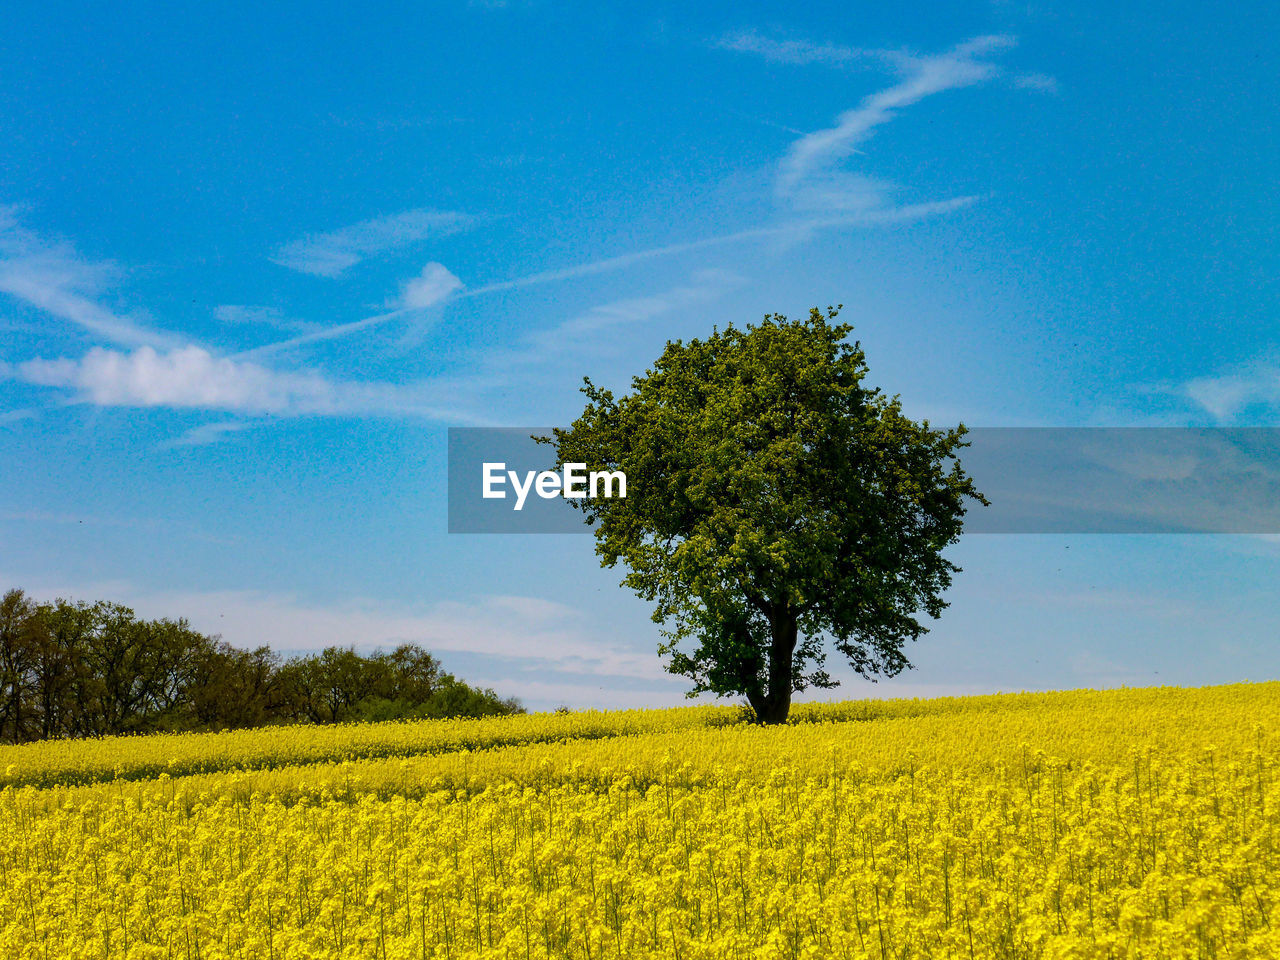 plant, landscape, field, beauty in nature, land, sky, yellow, growth, tranquility, environment, tranquil scene, tree, agriculture, nature, rural scene, flower, oilseed rape, scenics - nature, crop, blue, no people, outdoors